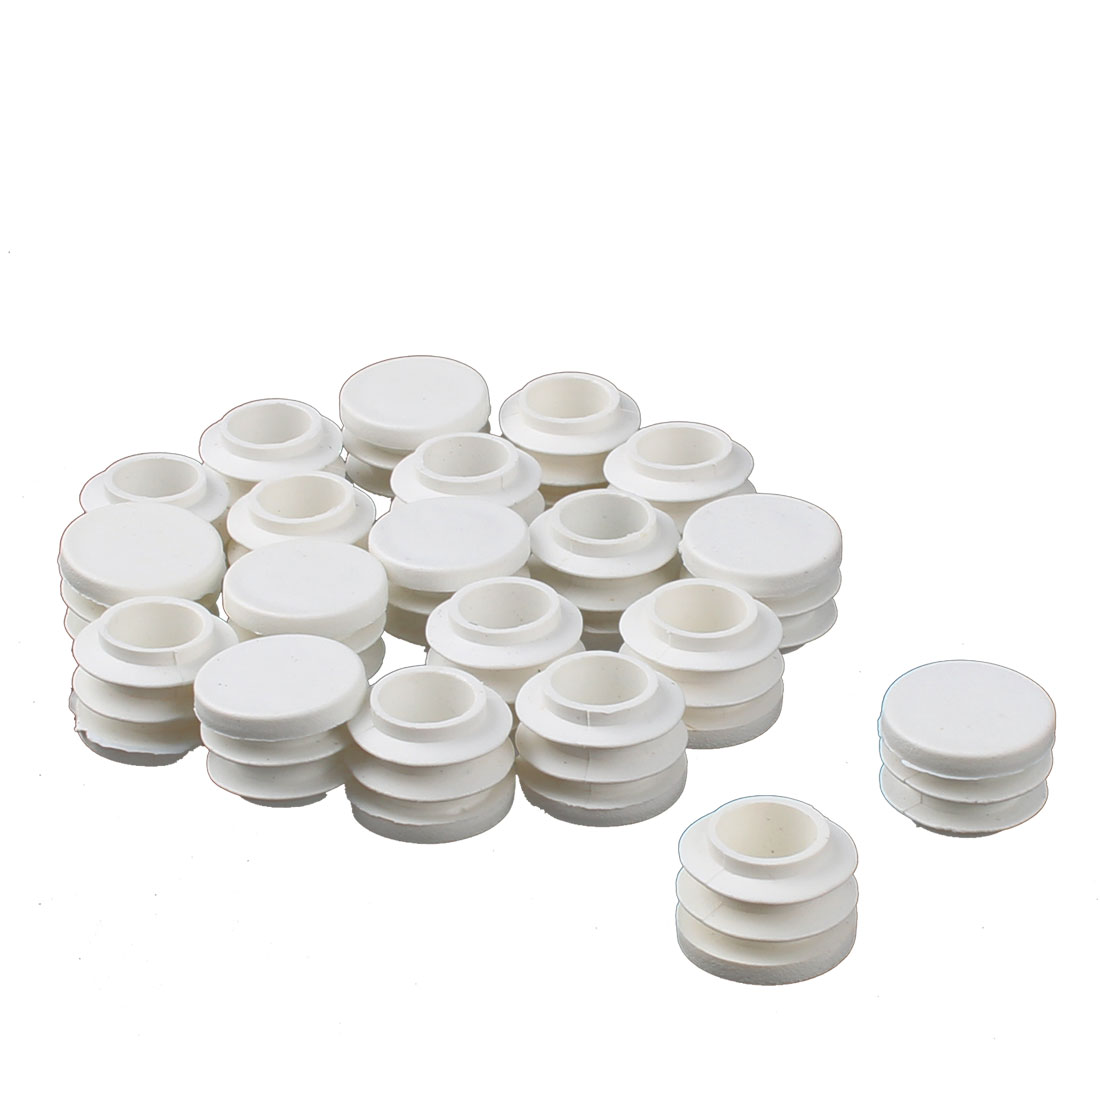 Table Chair Plastic Round Tube Pipe Insert Cover Protector White 19mm Dia 10pcs - image 1 de 1